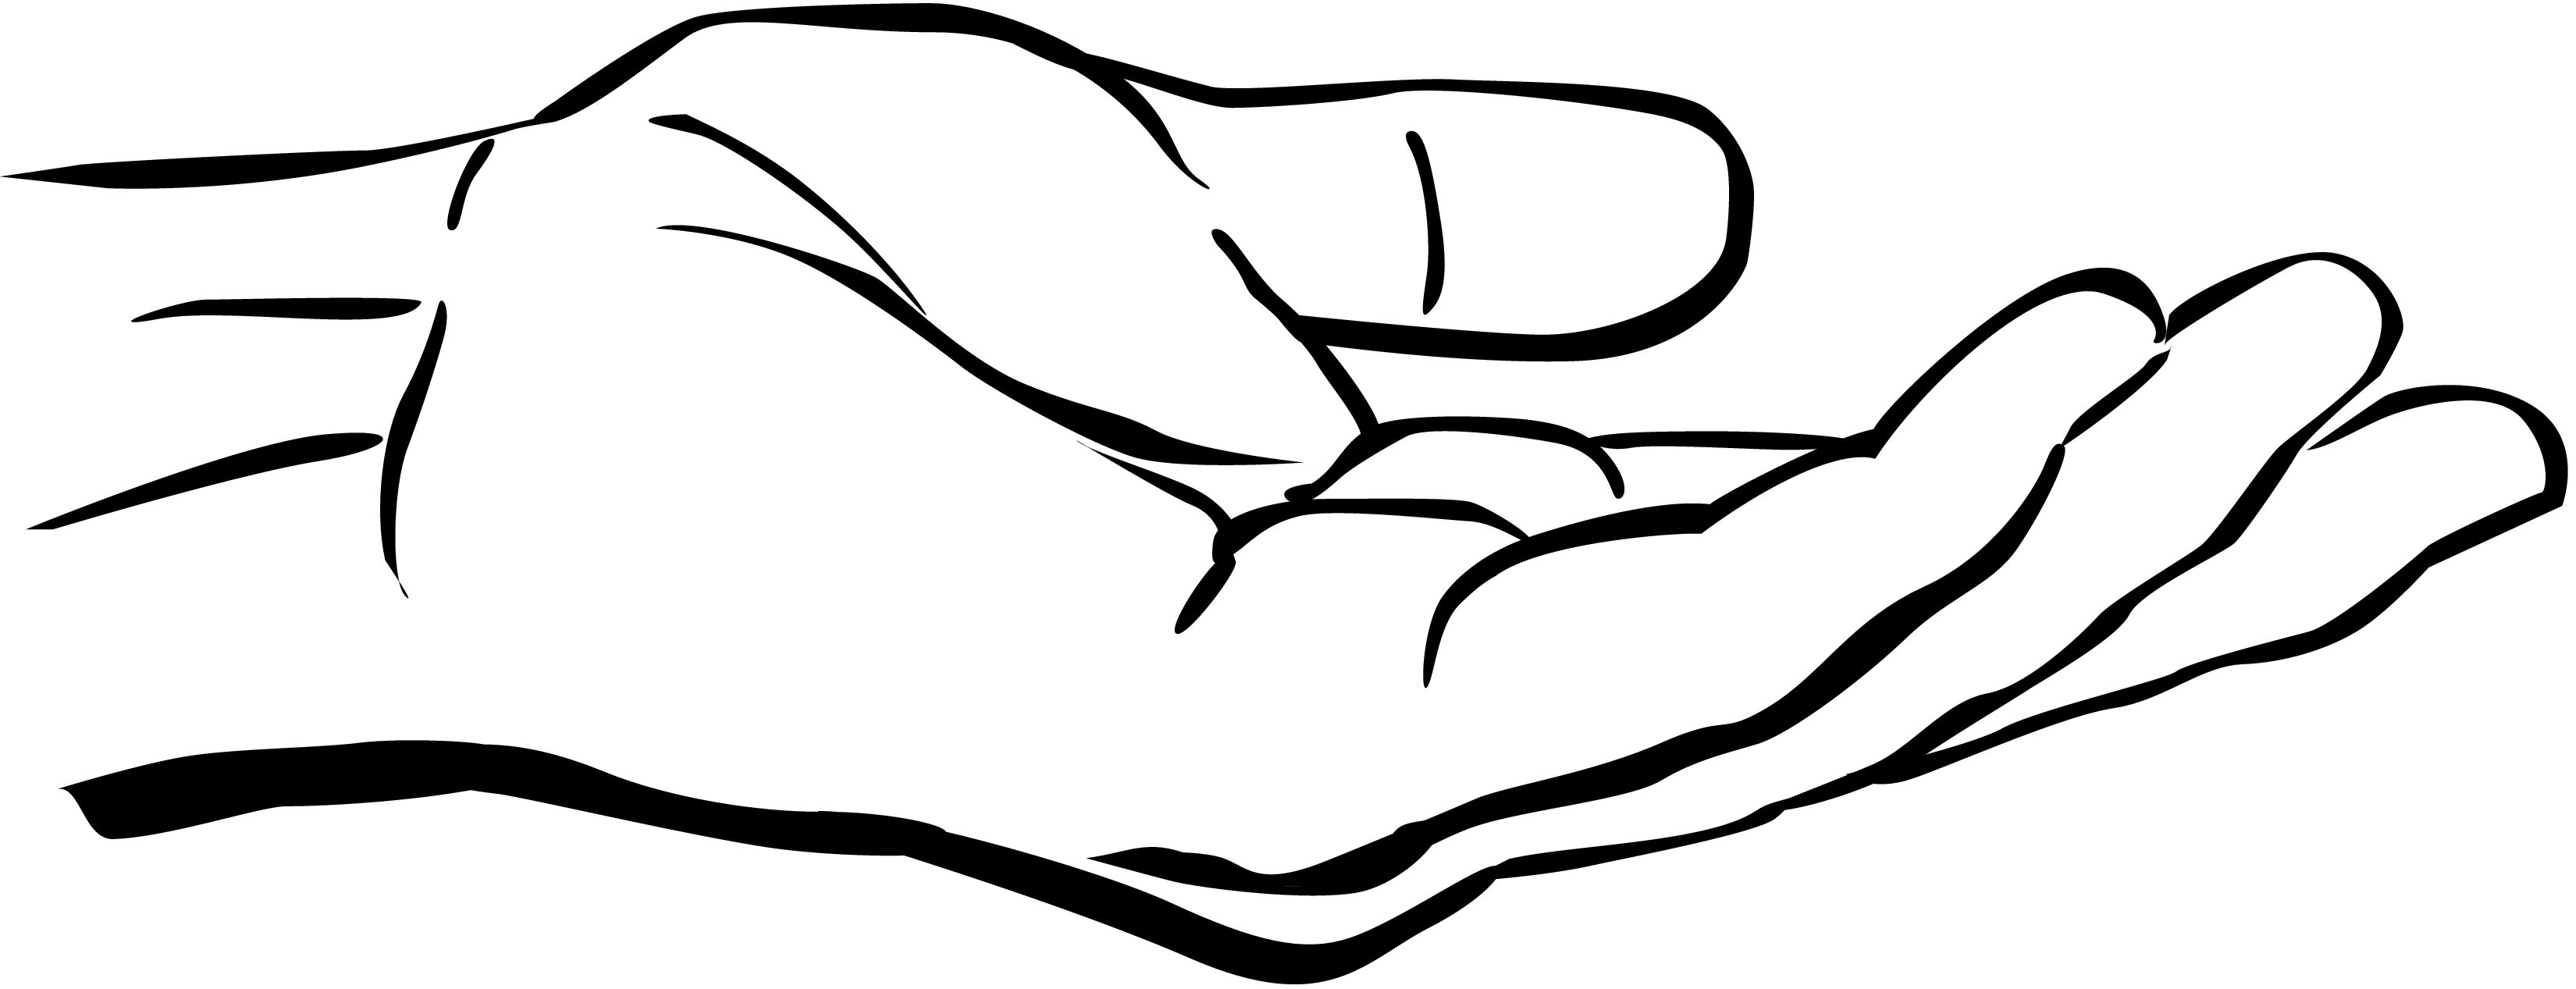 3300x1267 God's Hand Of Care, Clipart Panda